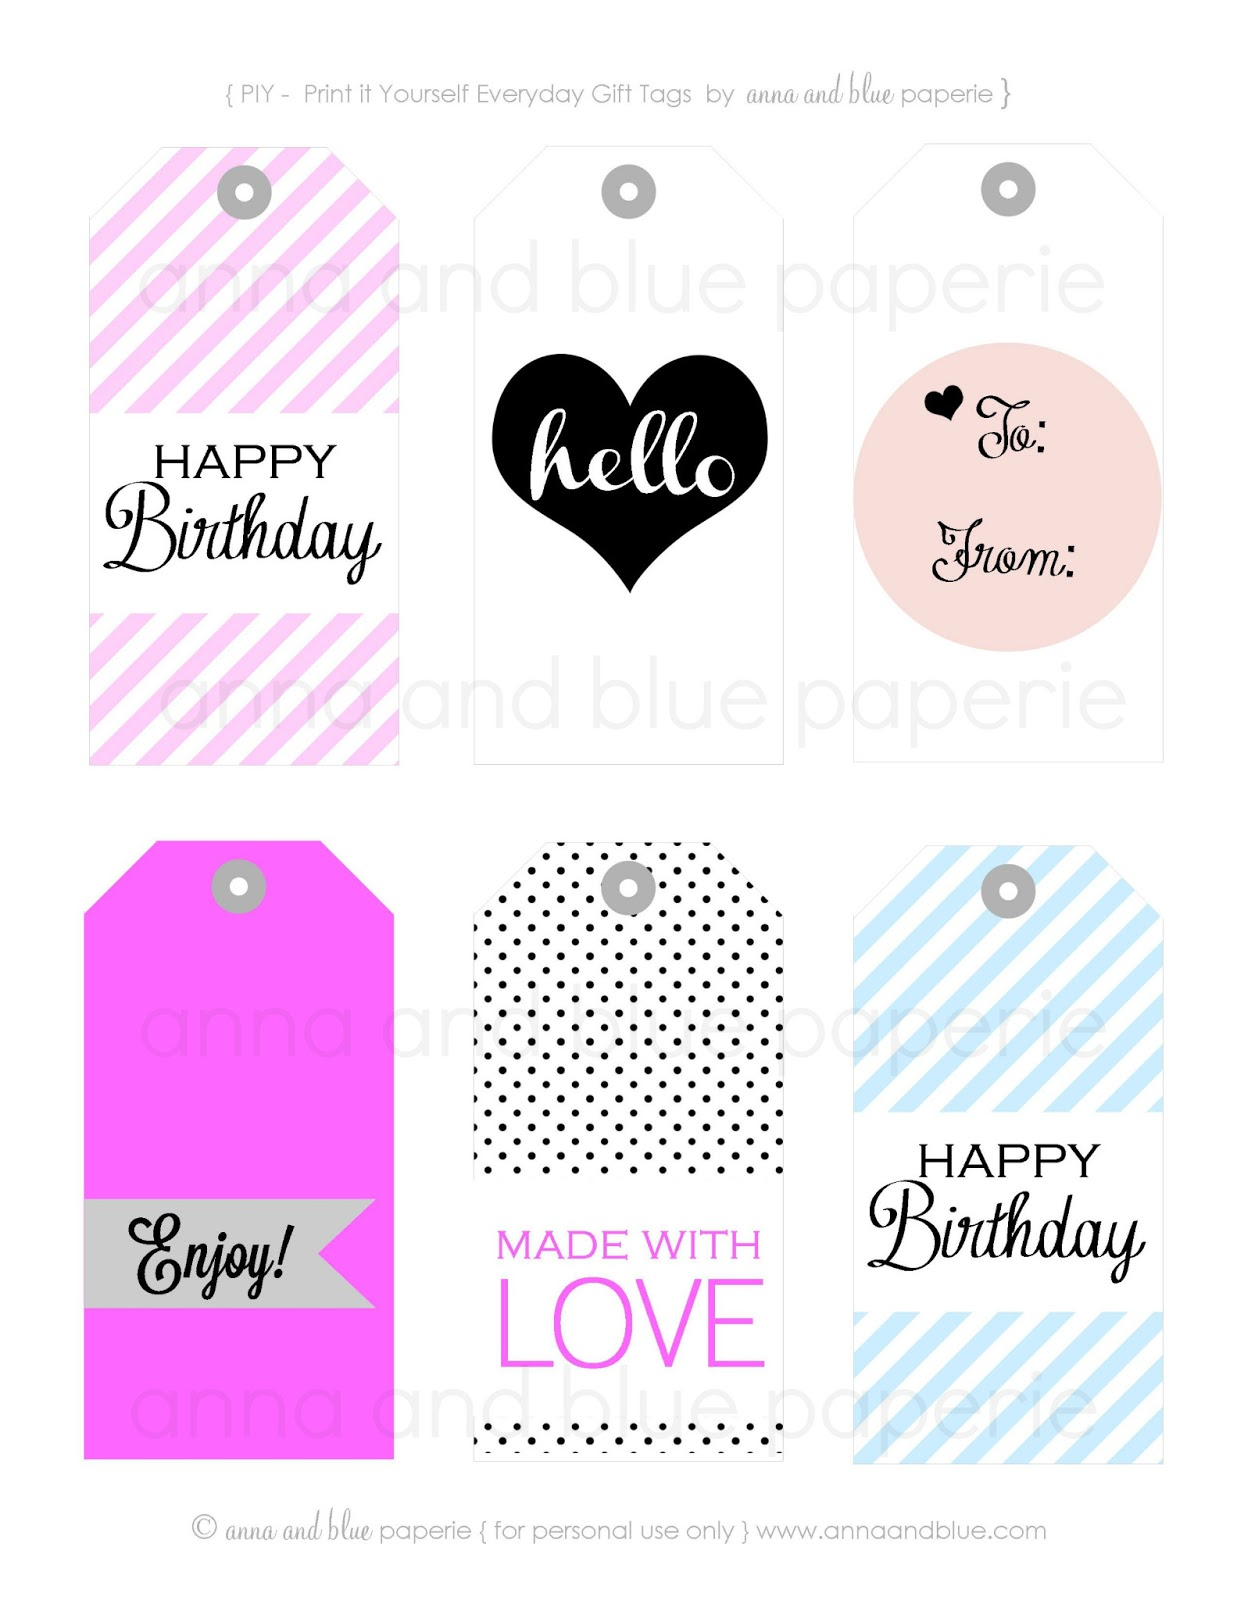 Anna and blue paperie gift tags free printable print negle